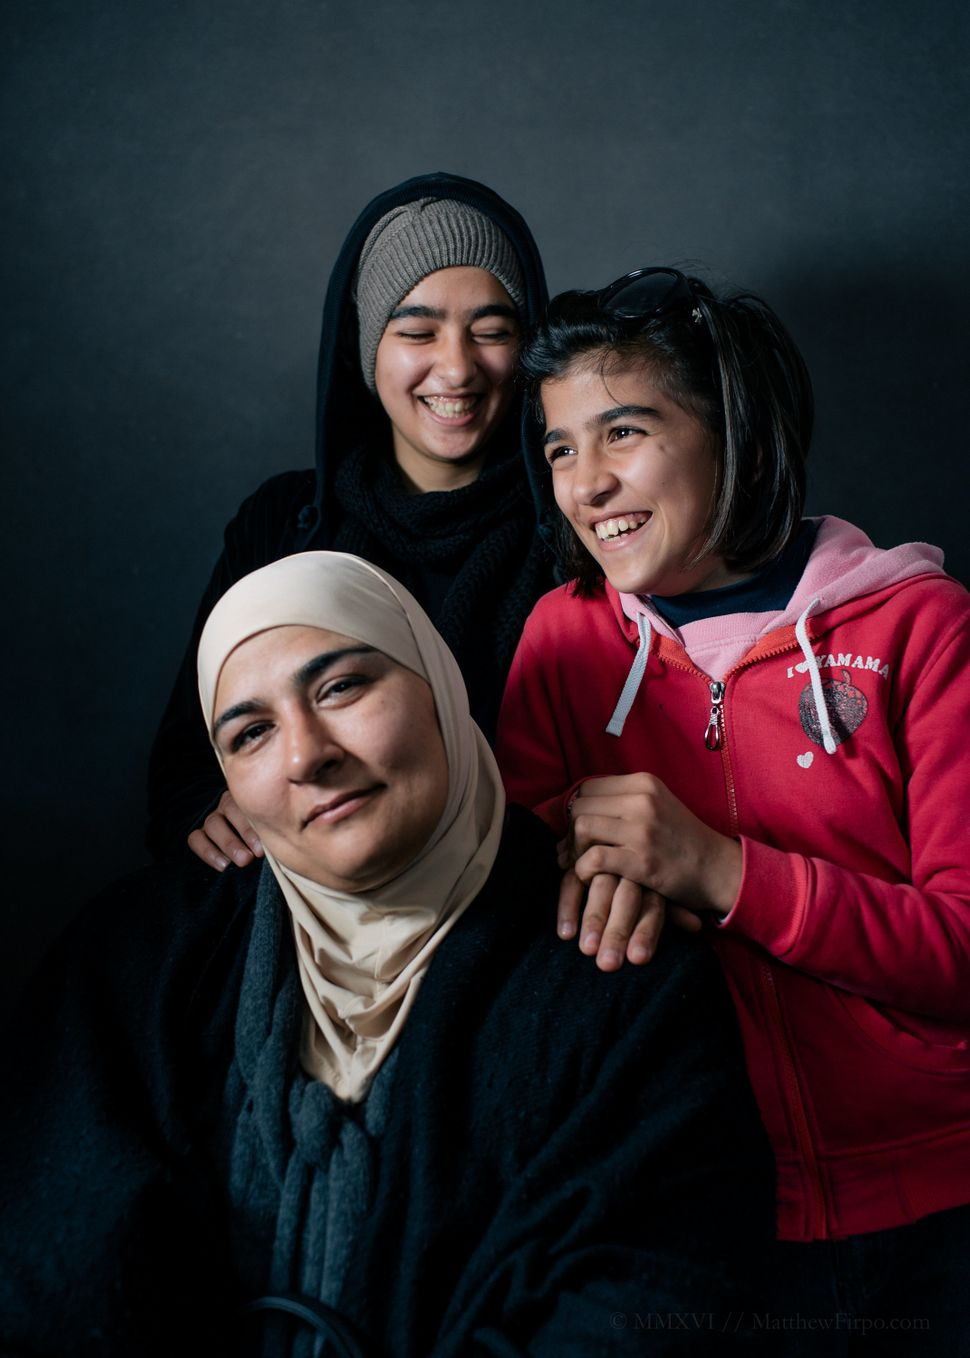 Ghoson and her two daughters fled Damascus two years after her husband -- a soldier in Bashar Assad's army -- disappeared. Bu